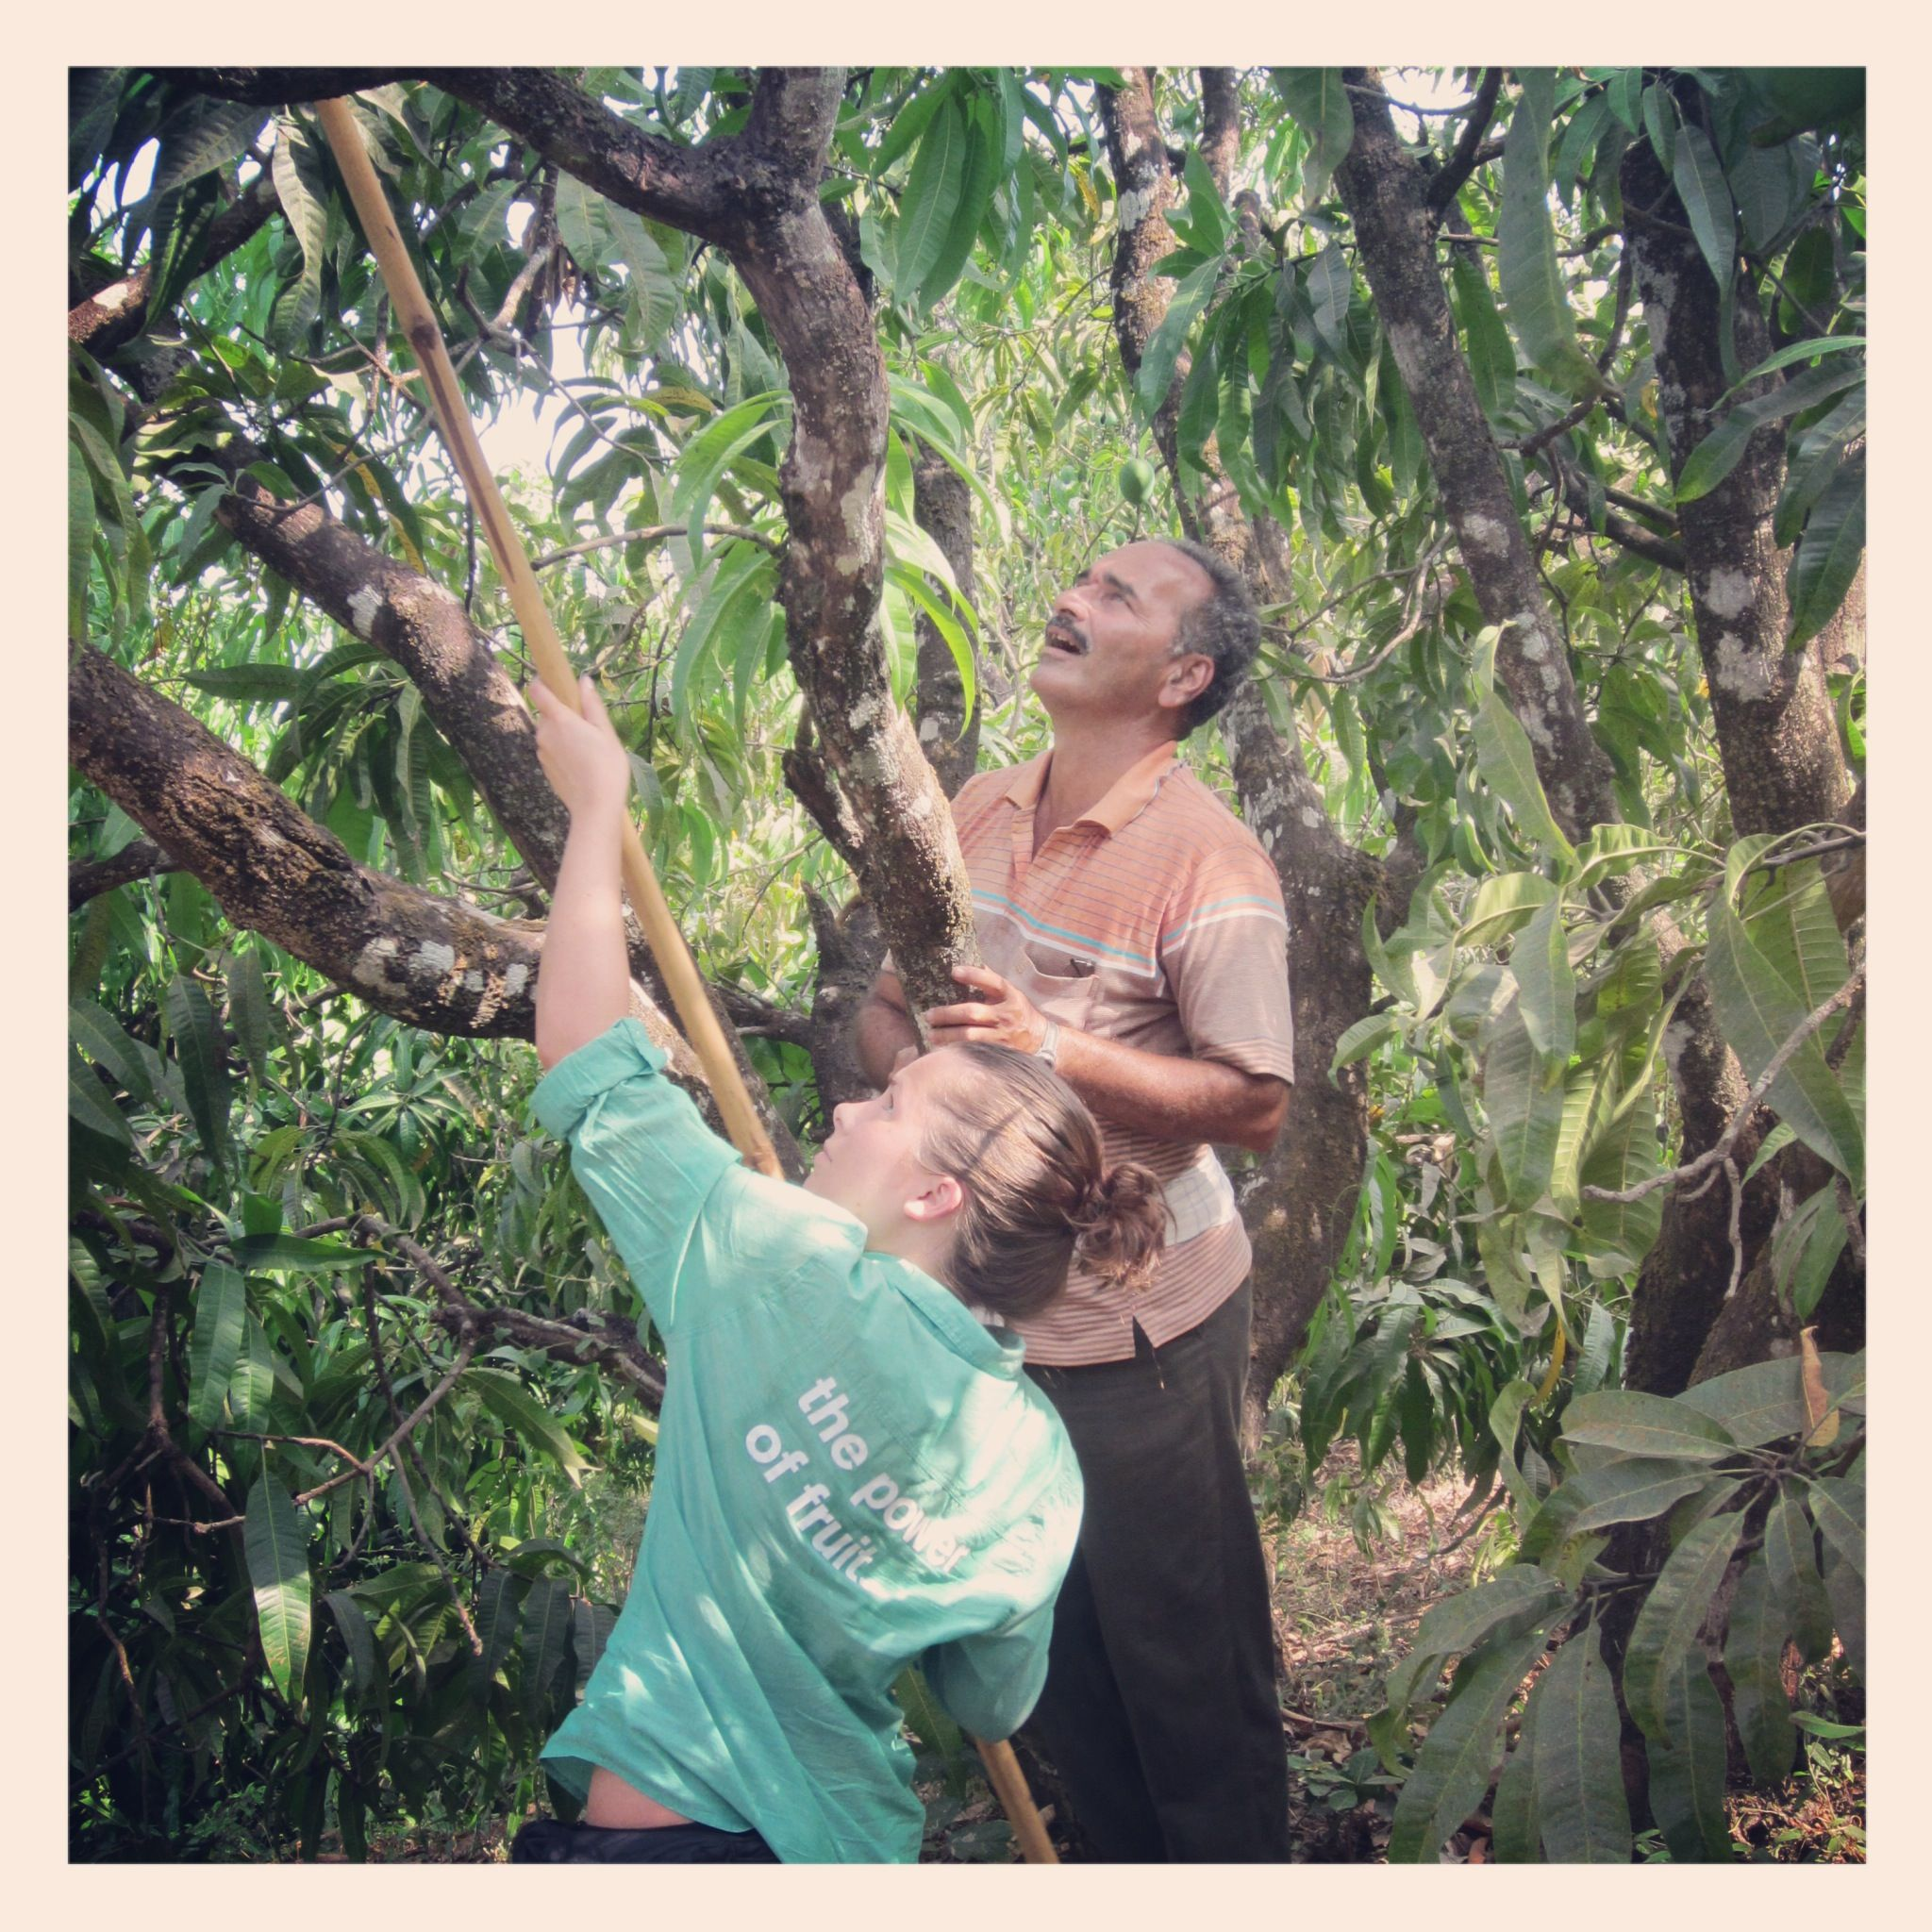 learning to pick mangoes in india.